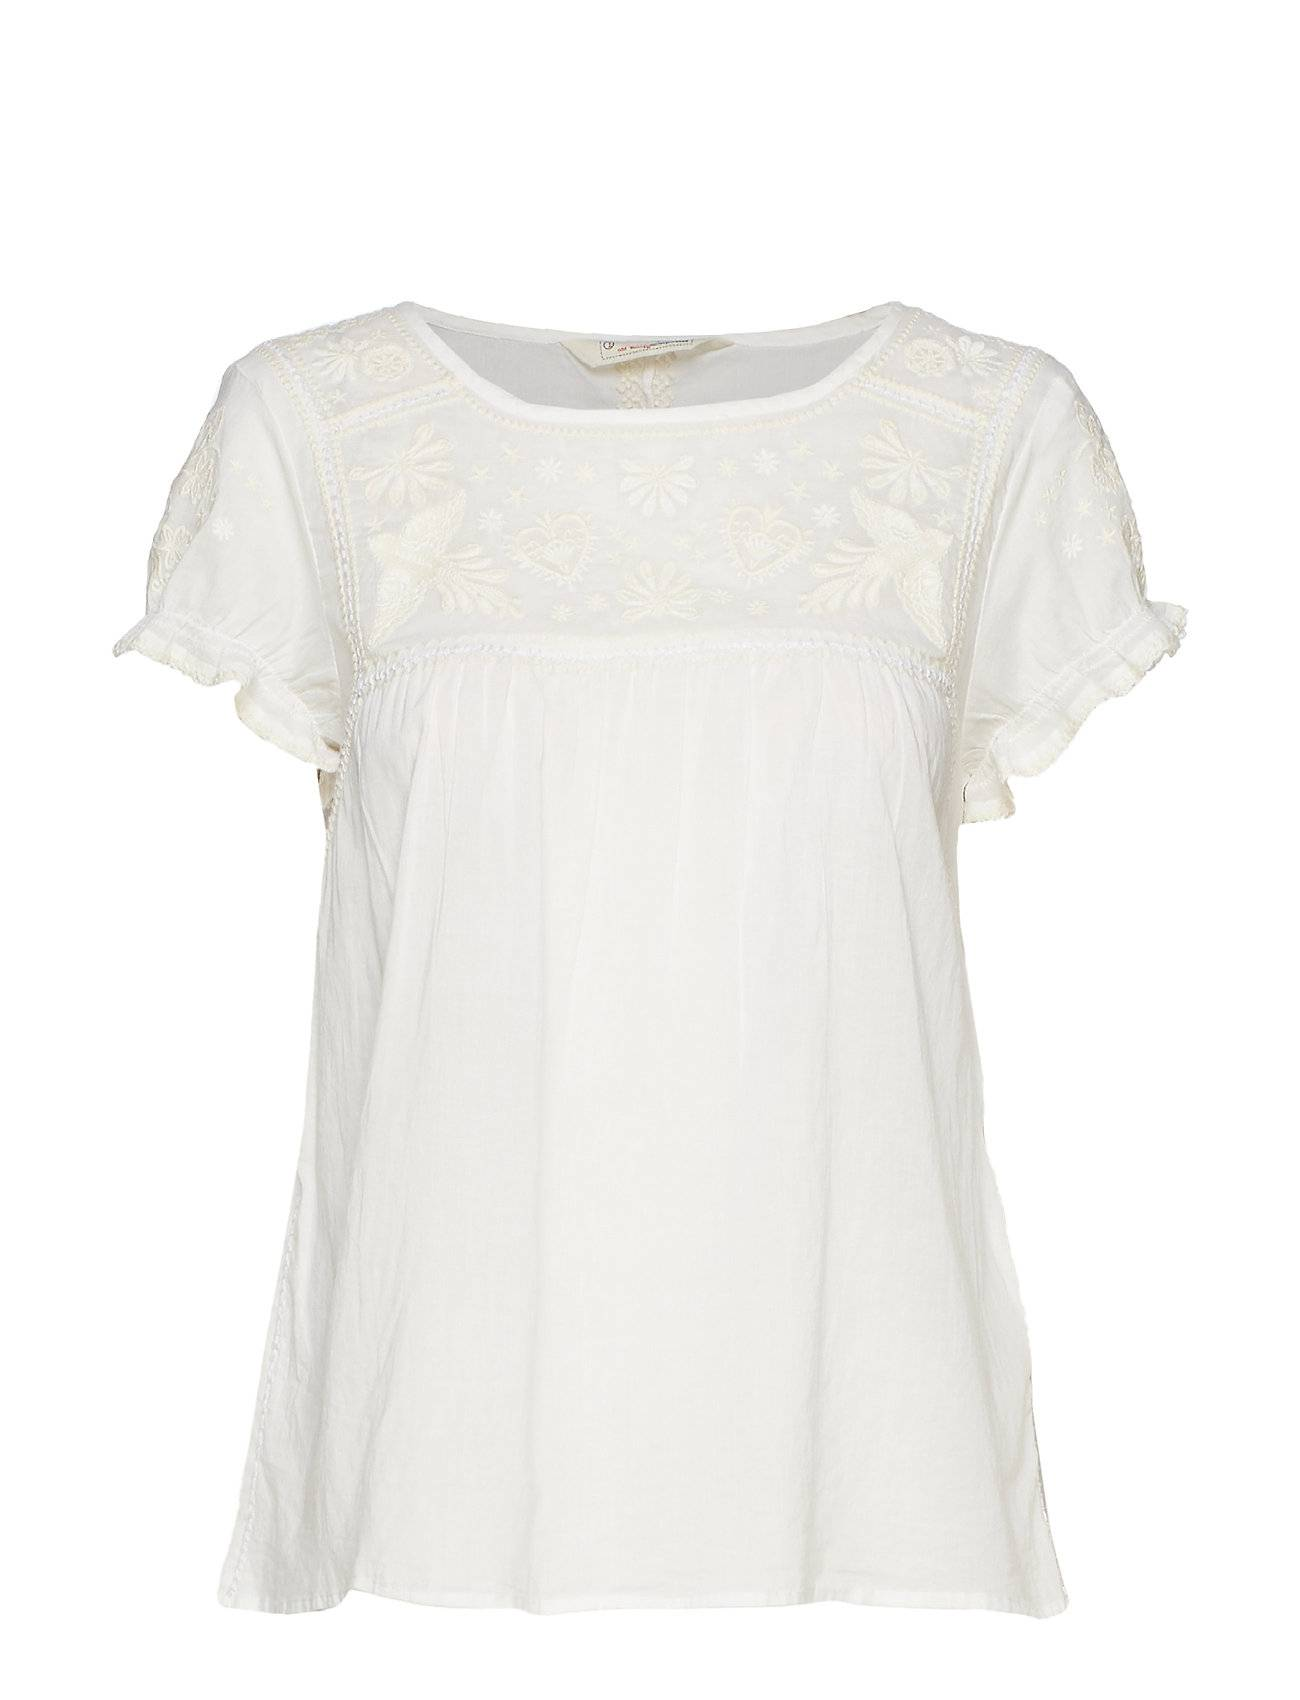 Image of ODD MOLLY No Doubt Blouse Blouses Short-sleeved Valkoinen ODD MOLLY